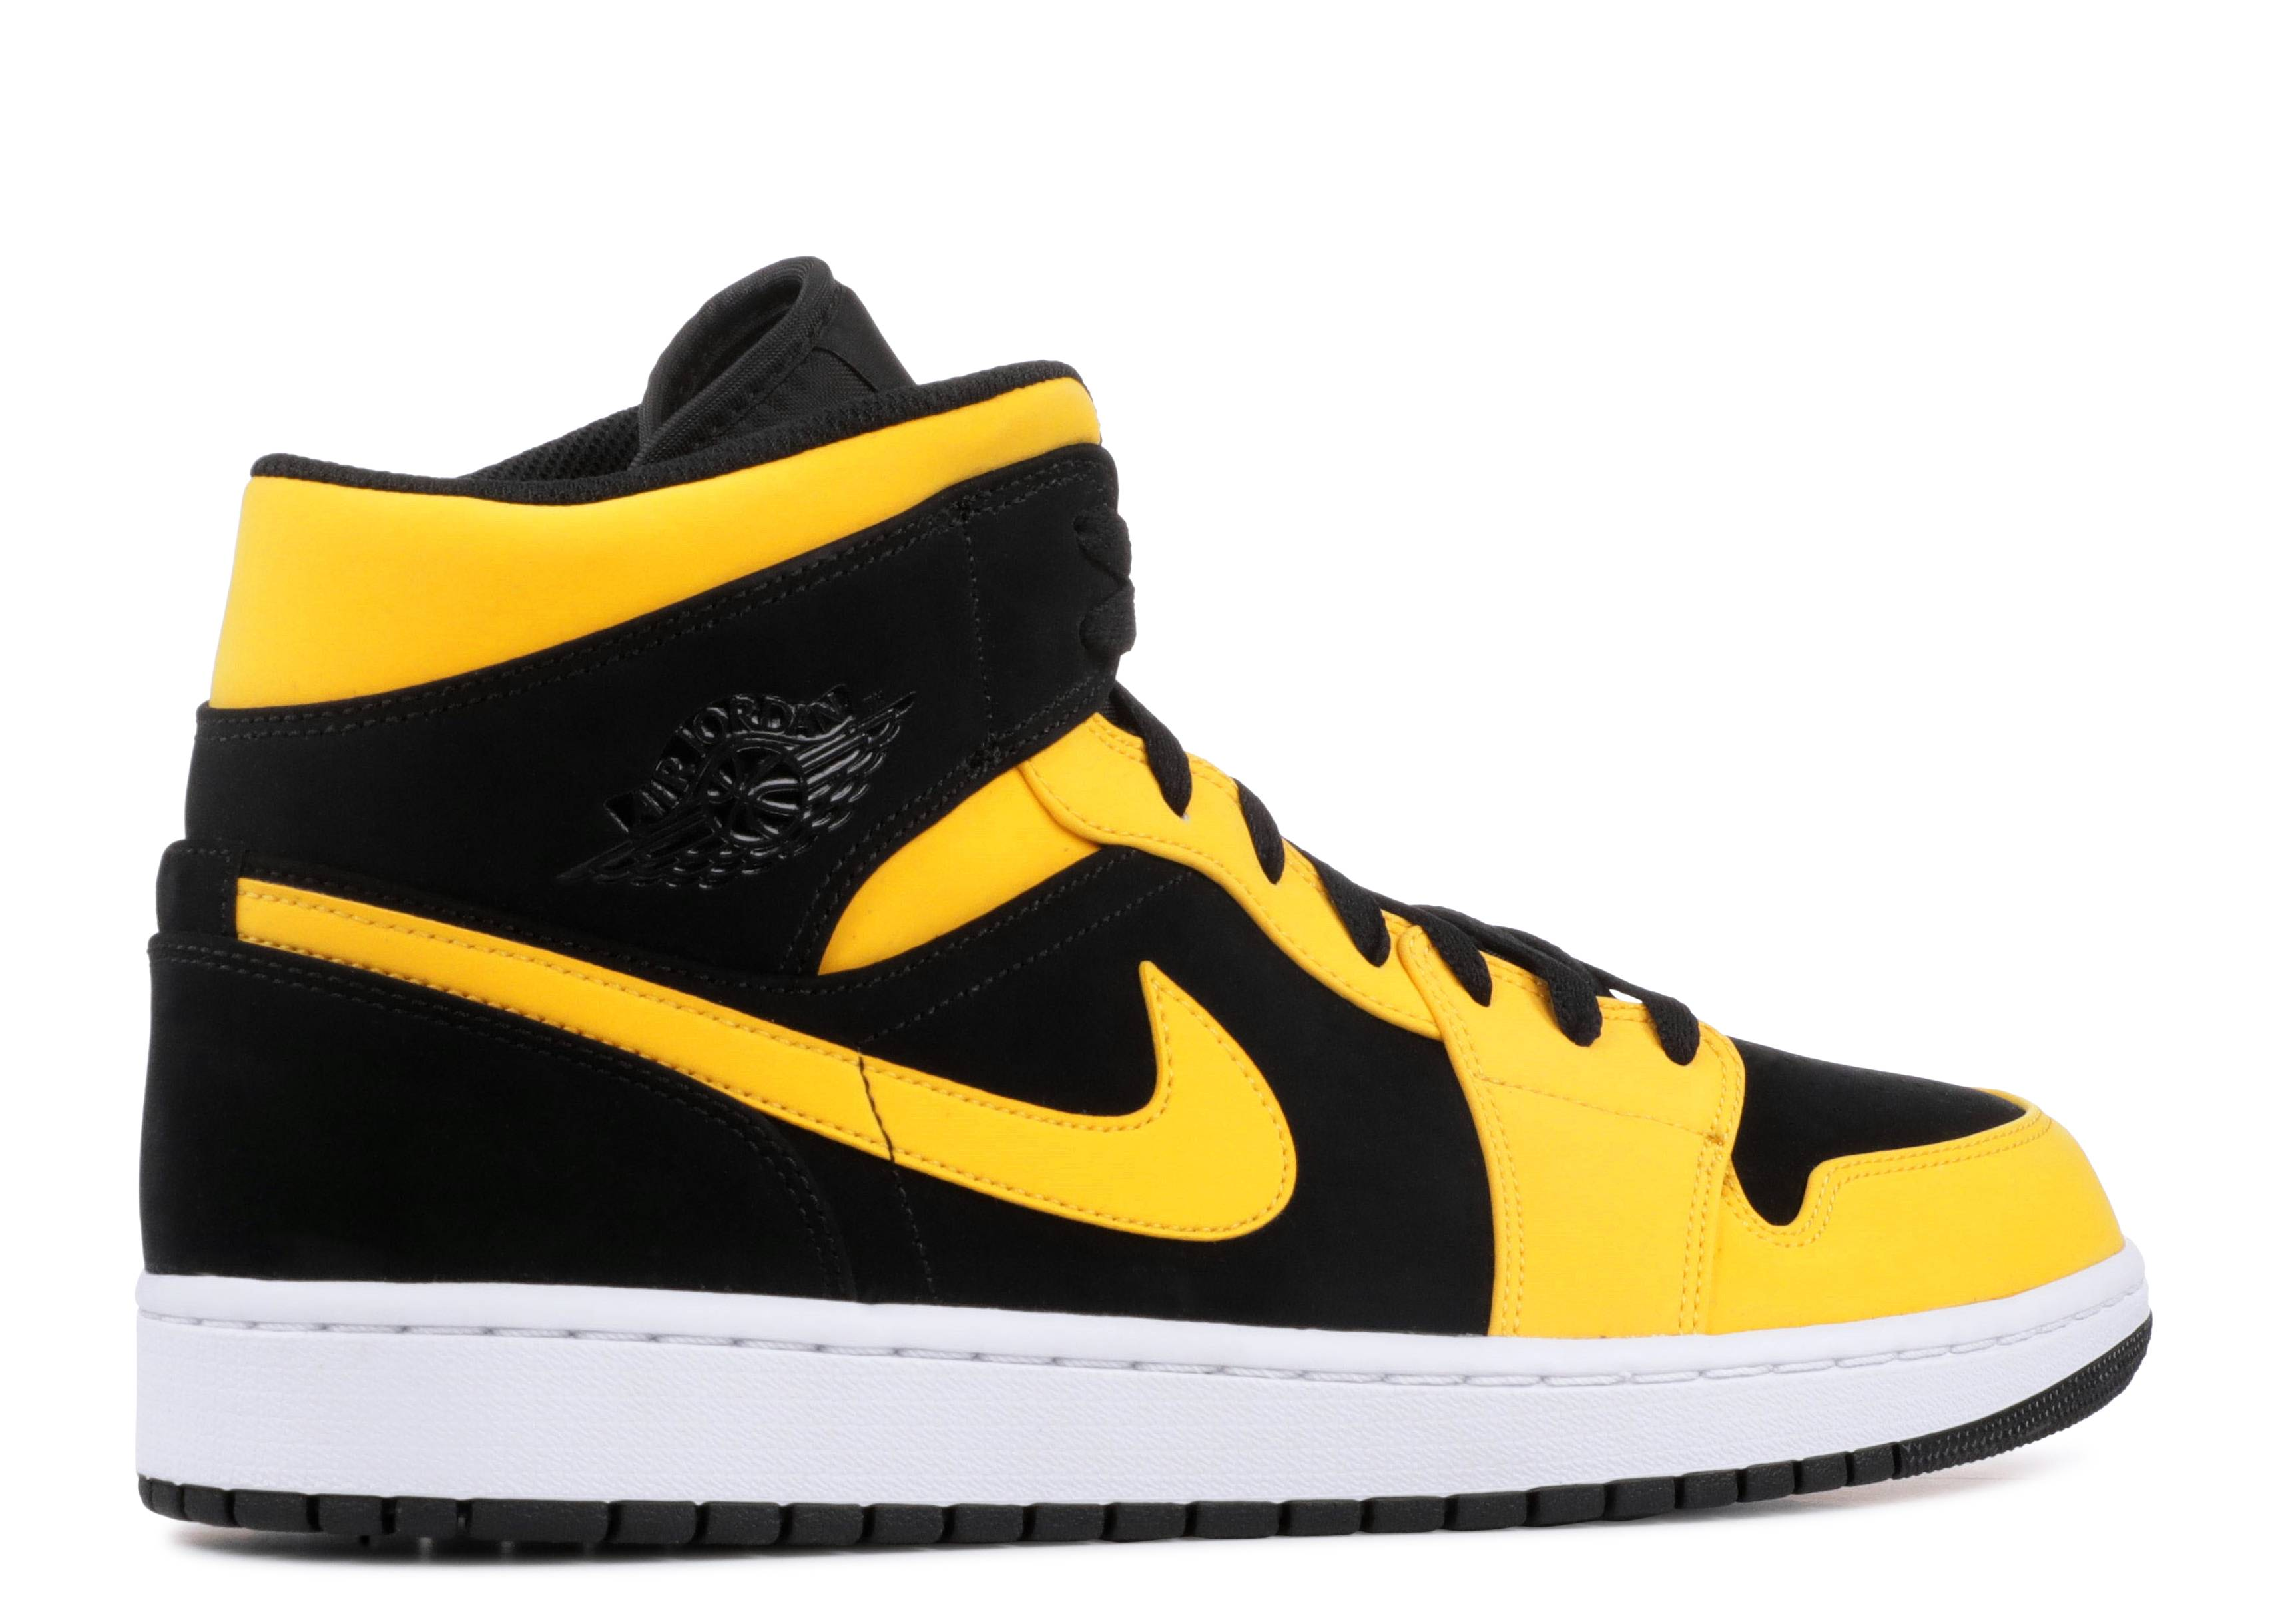 latest design special section exquisite style air jordan 1 mid